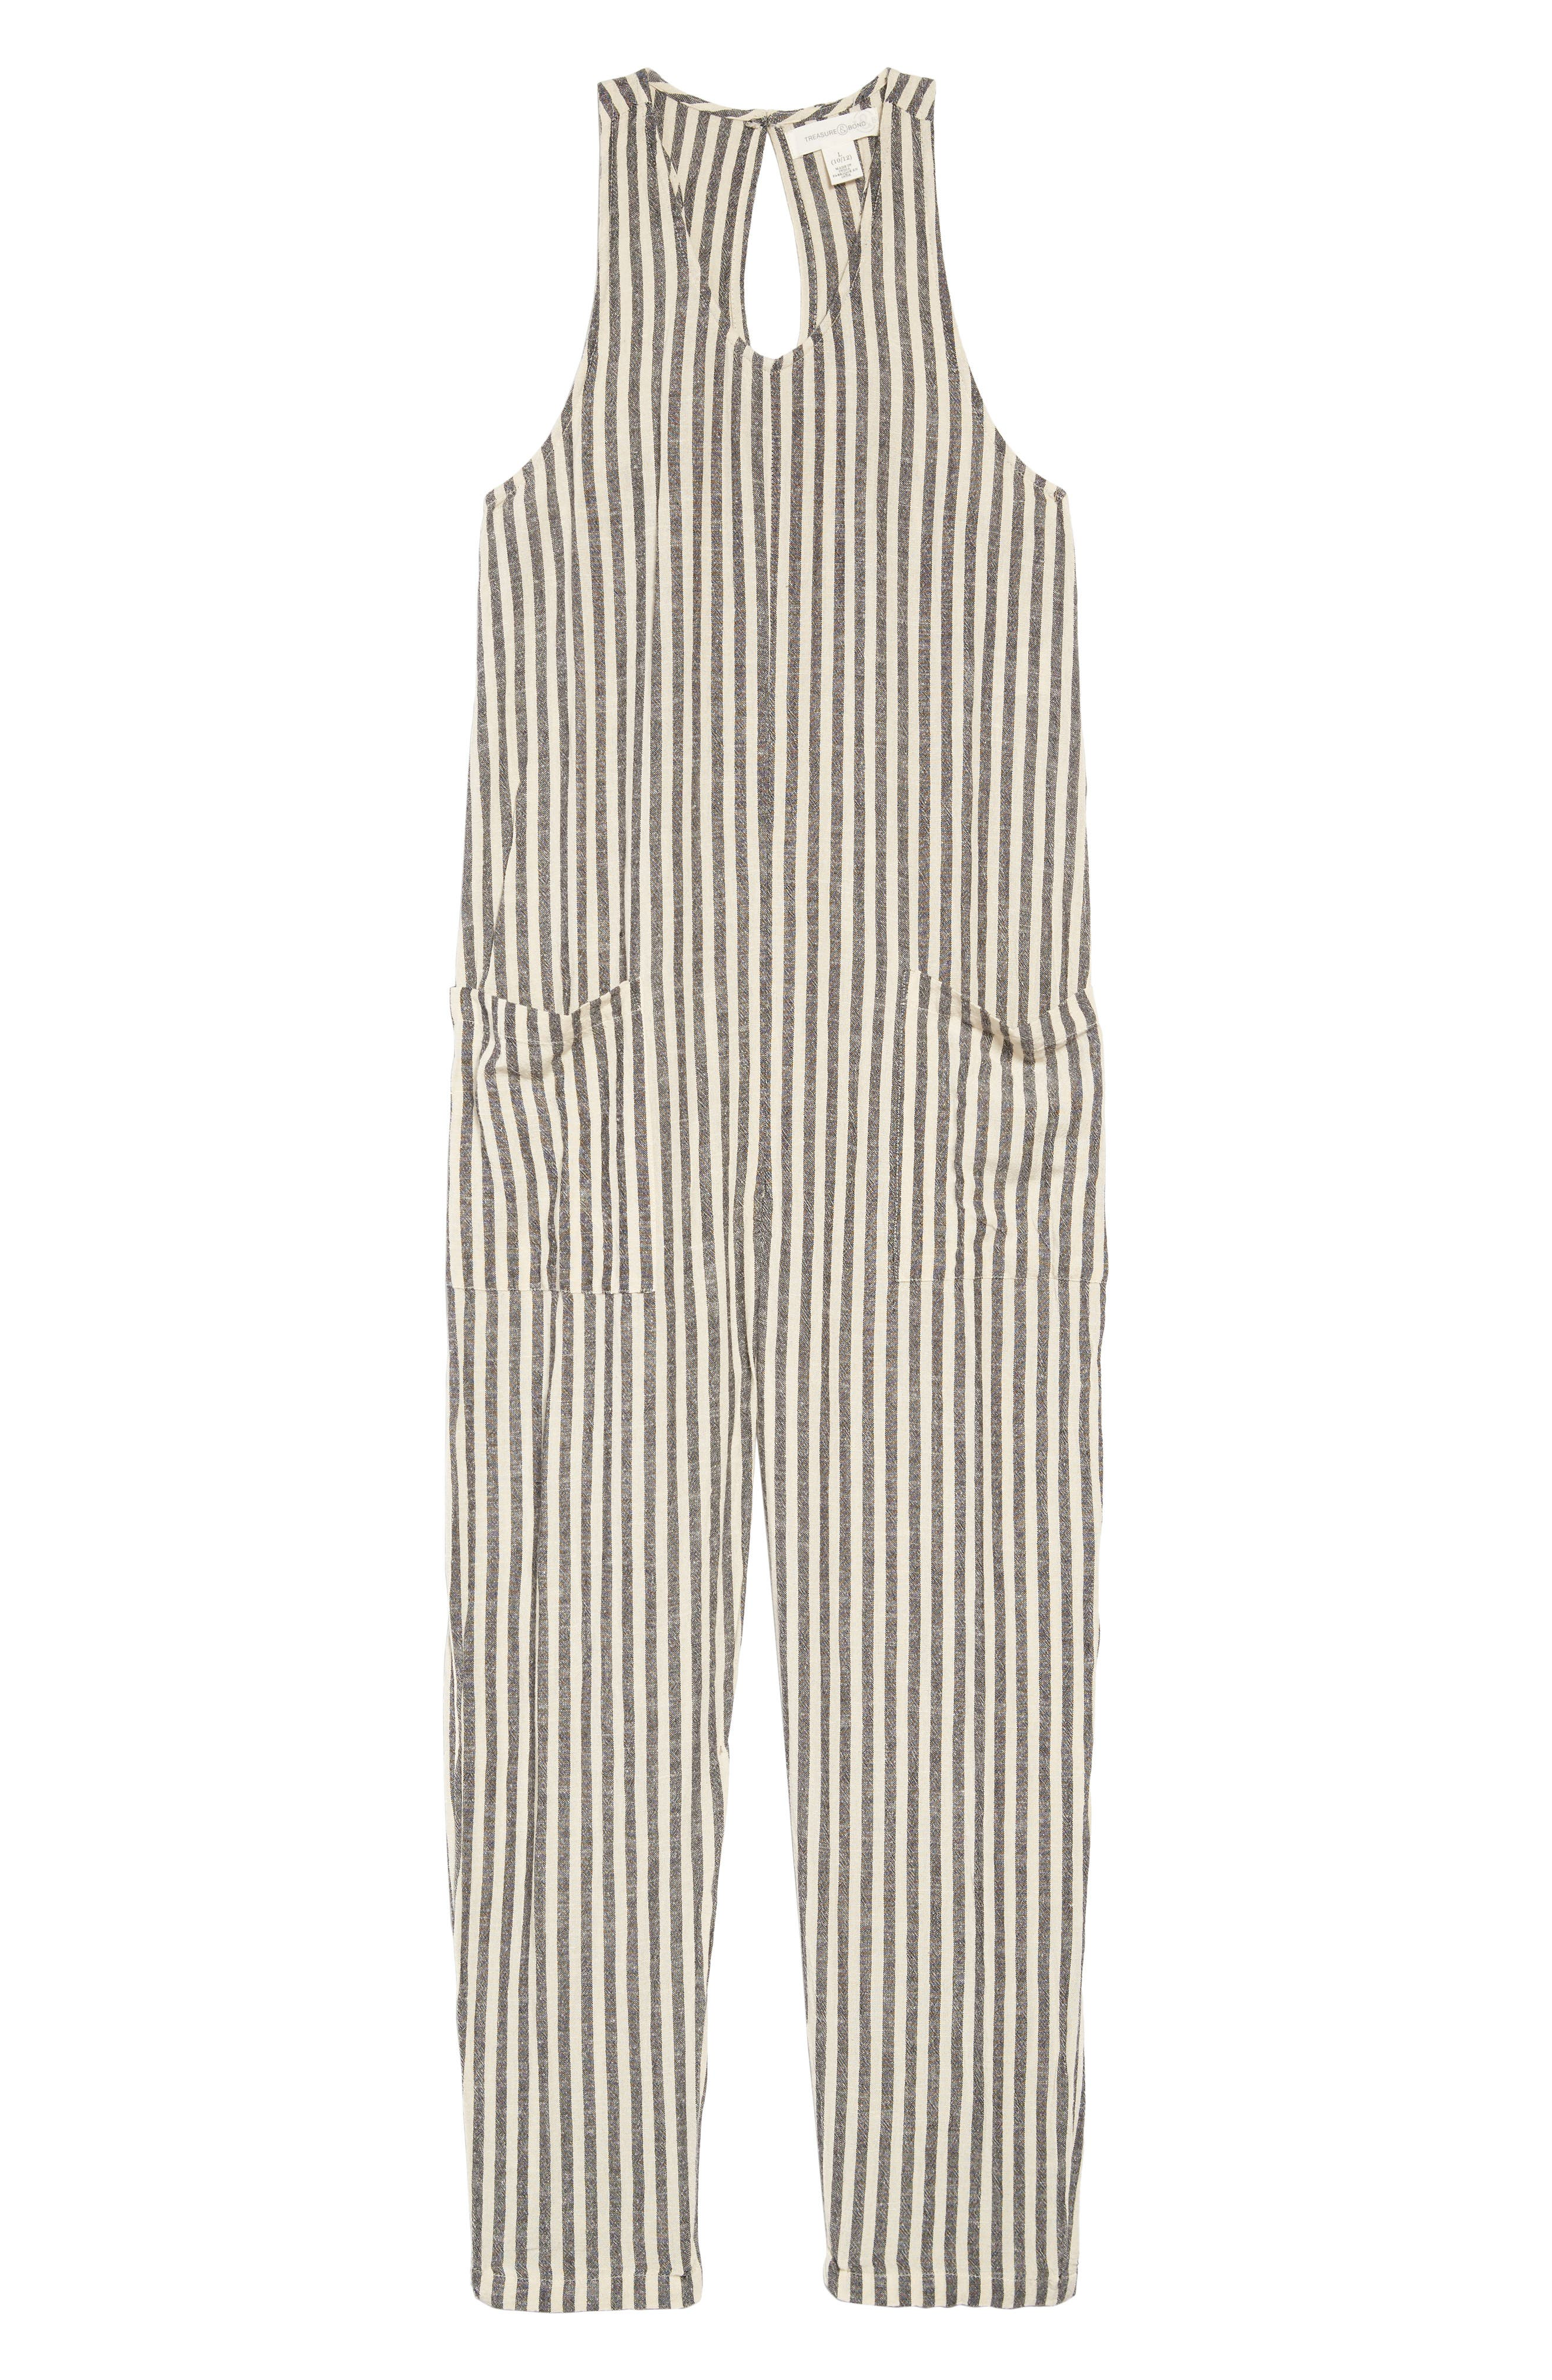 TREASURE & BOND Stripe Jumpsuit, Main, color, IVORY- BLACK EVEN STRIPE